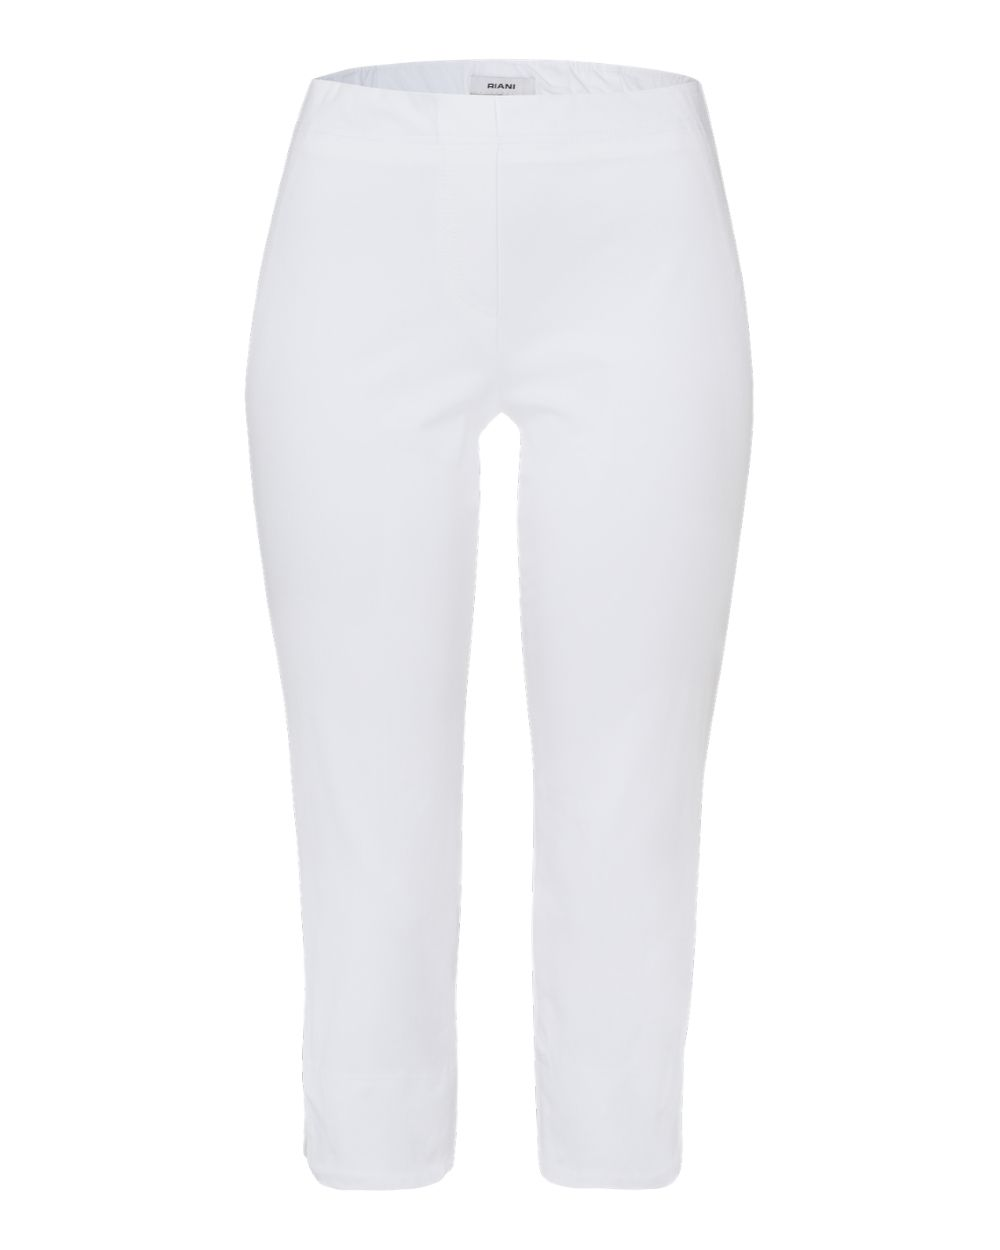 Riani White Short Trousers - Snooty Frox